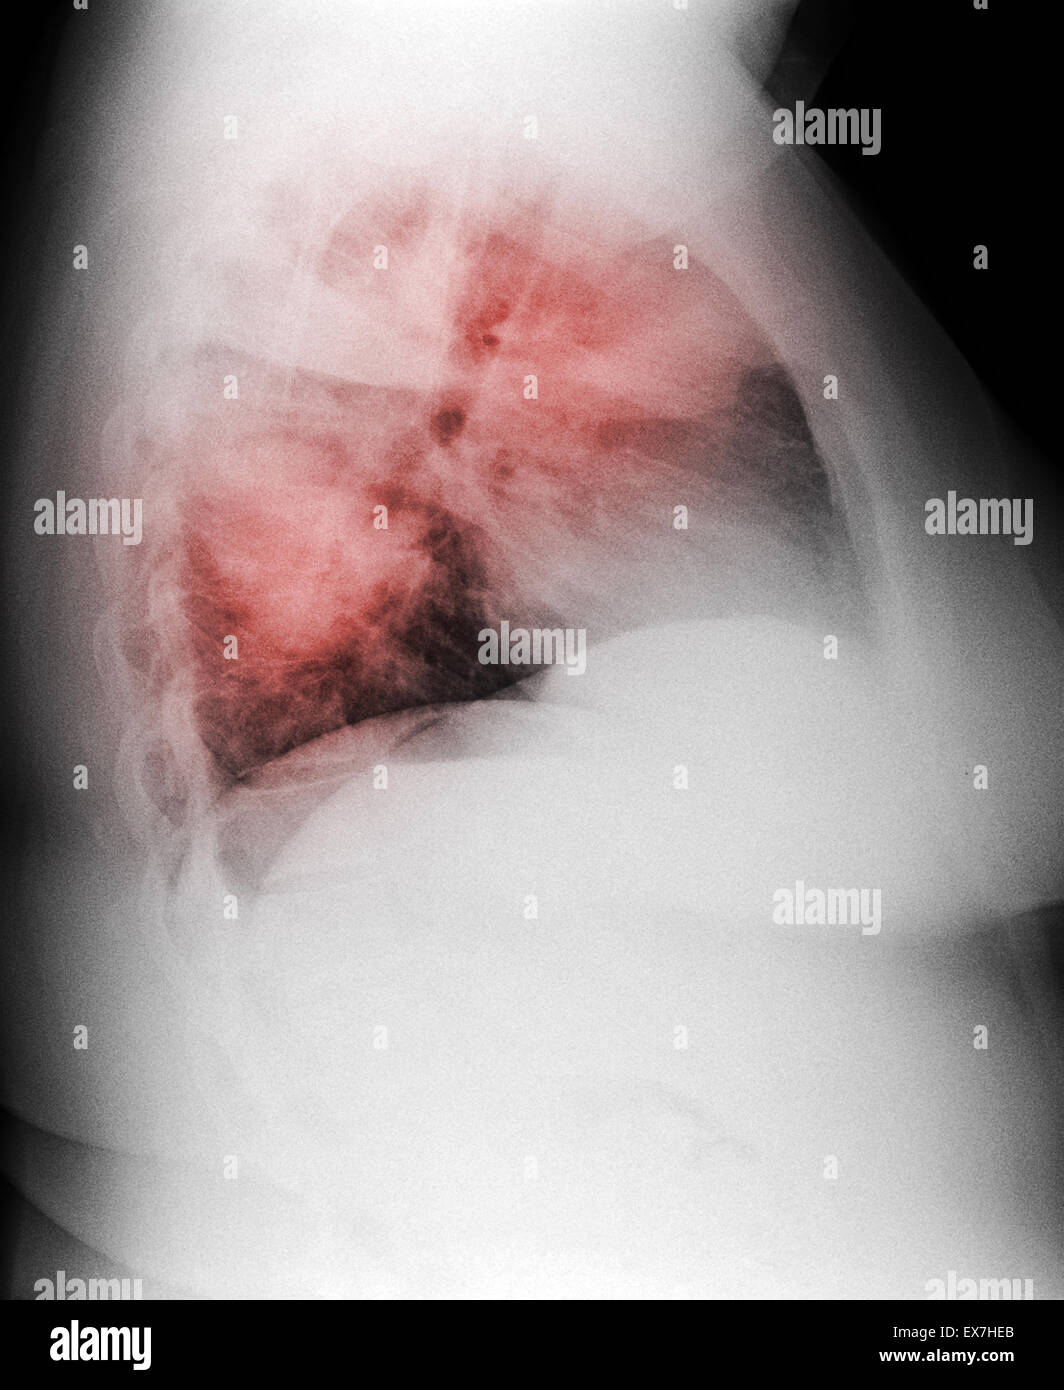 Chest x-ray showing diffuse interstitial infiltrates suggestive of  an atypical pneumonia. - Stock Image